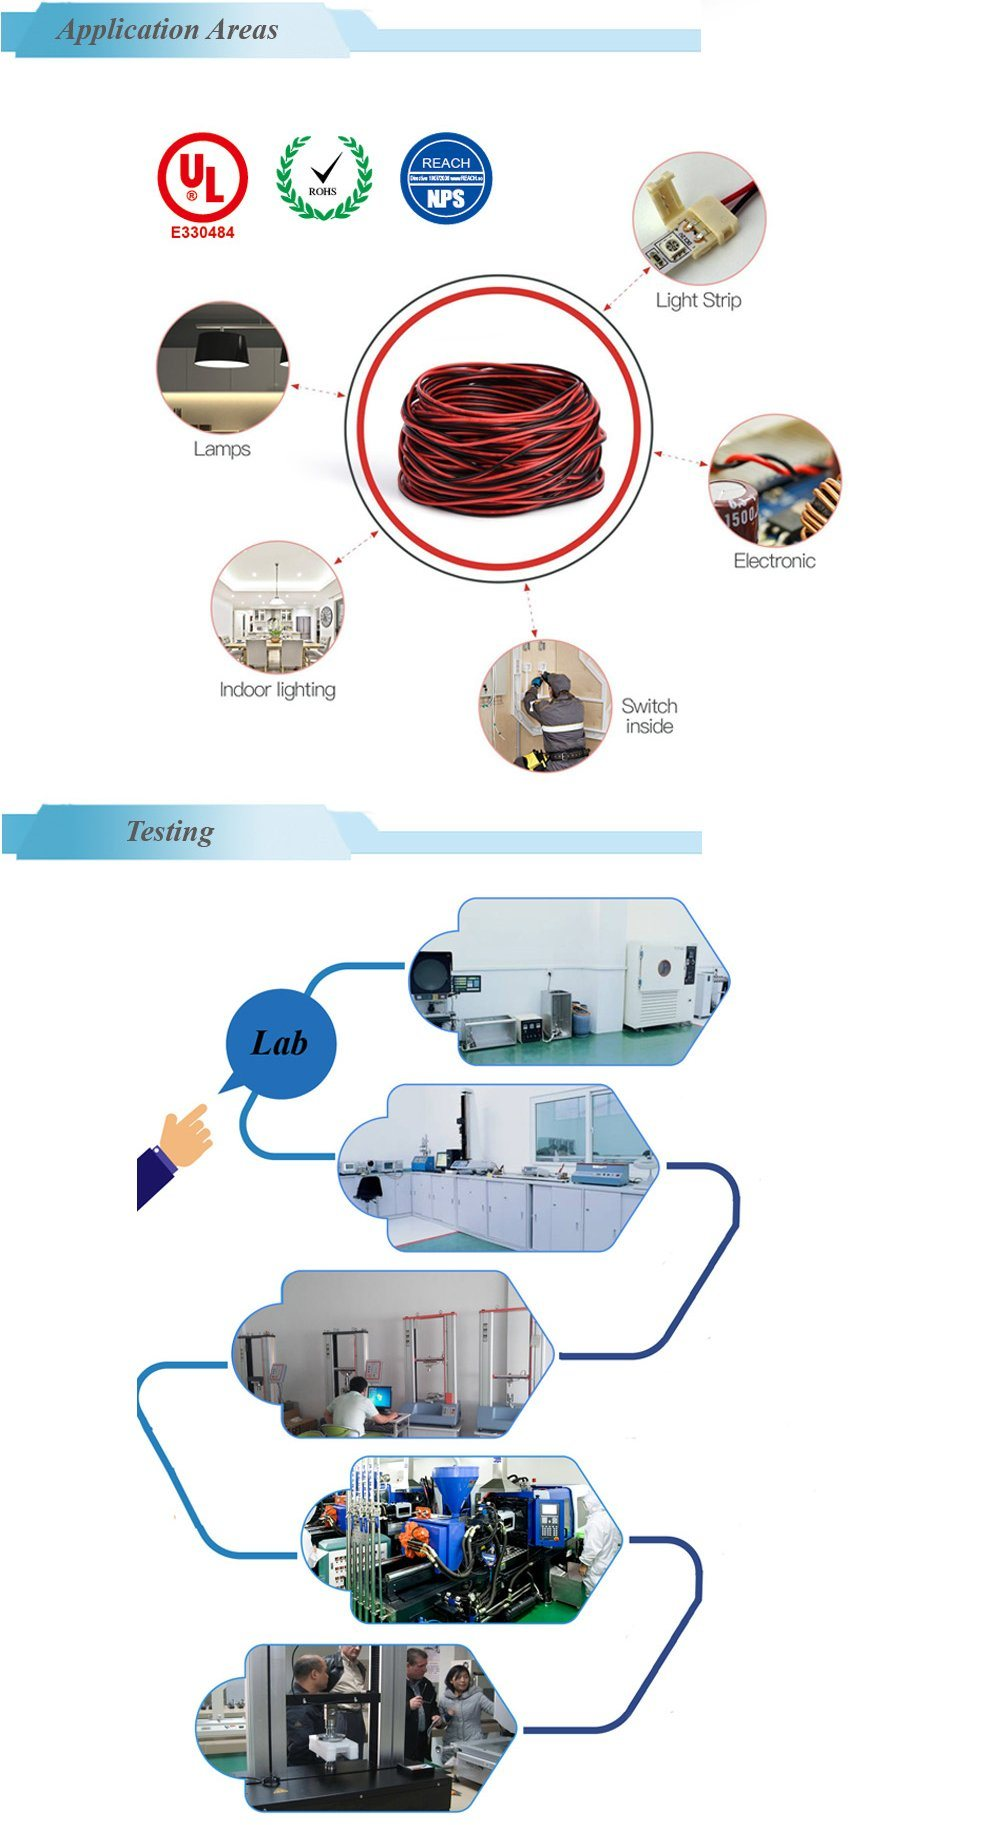 UL Certified Wire for Internal Wiring of Electronic and Electrical Equipment